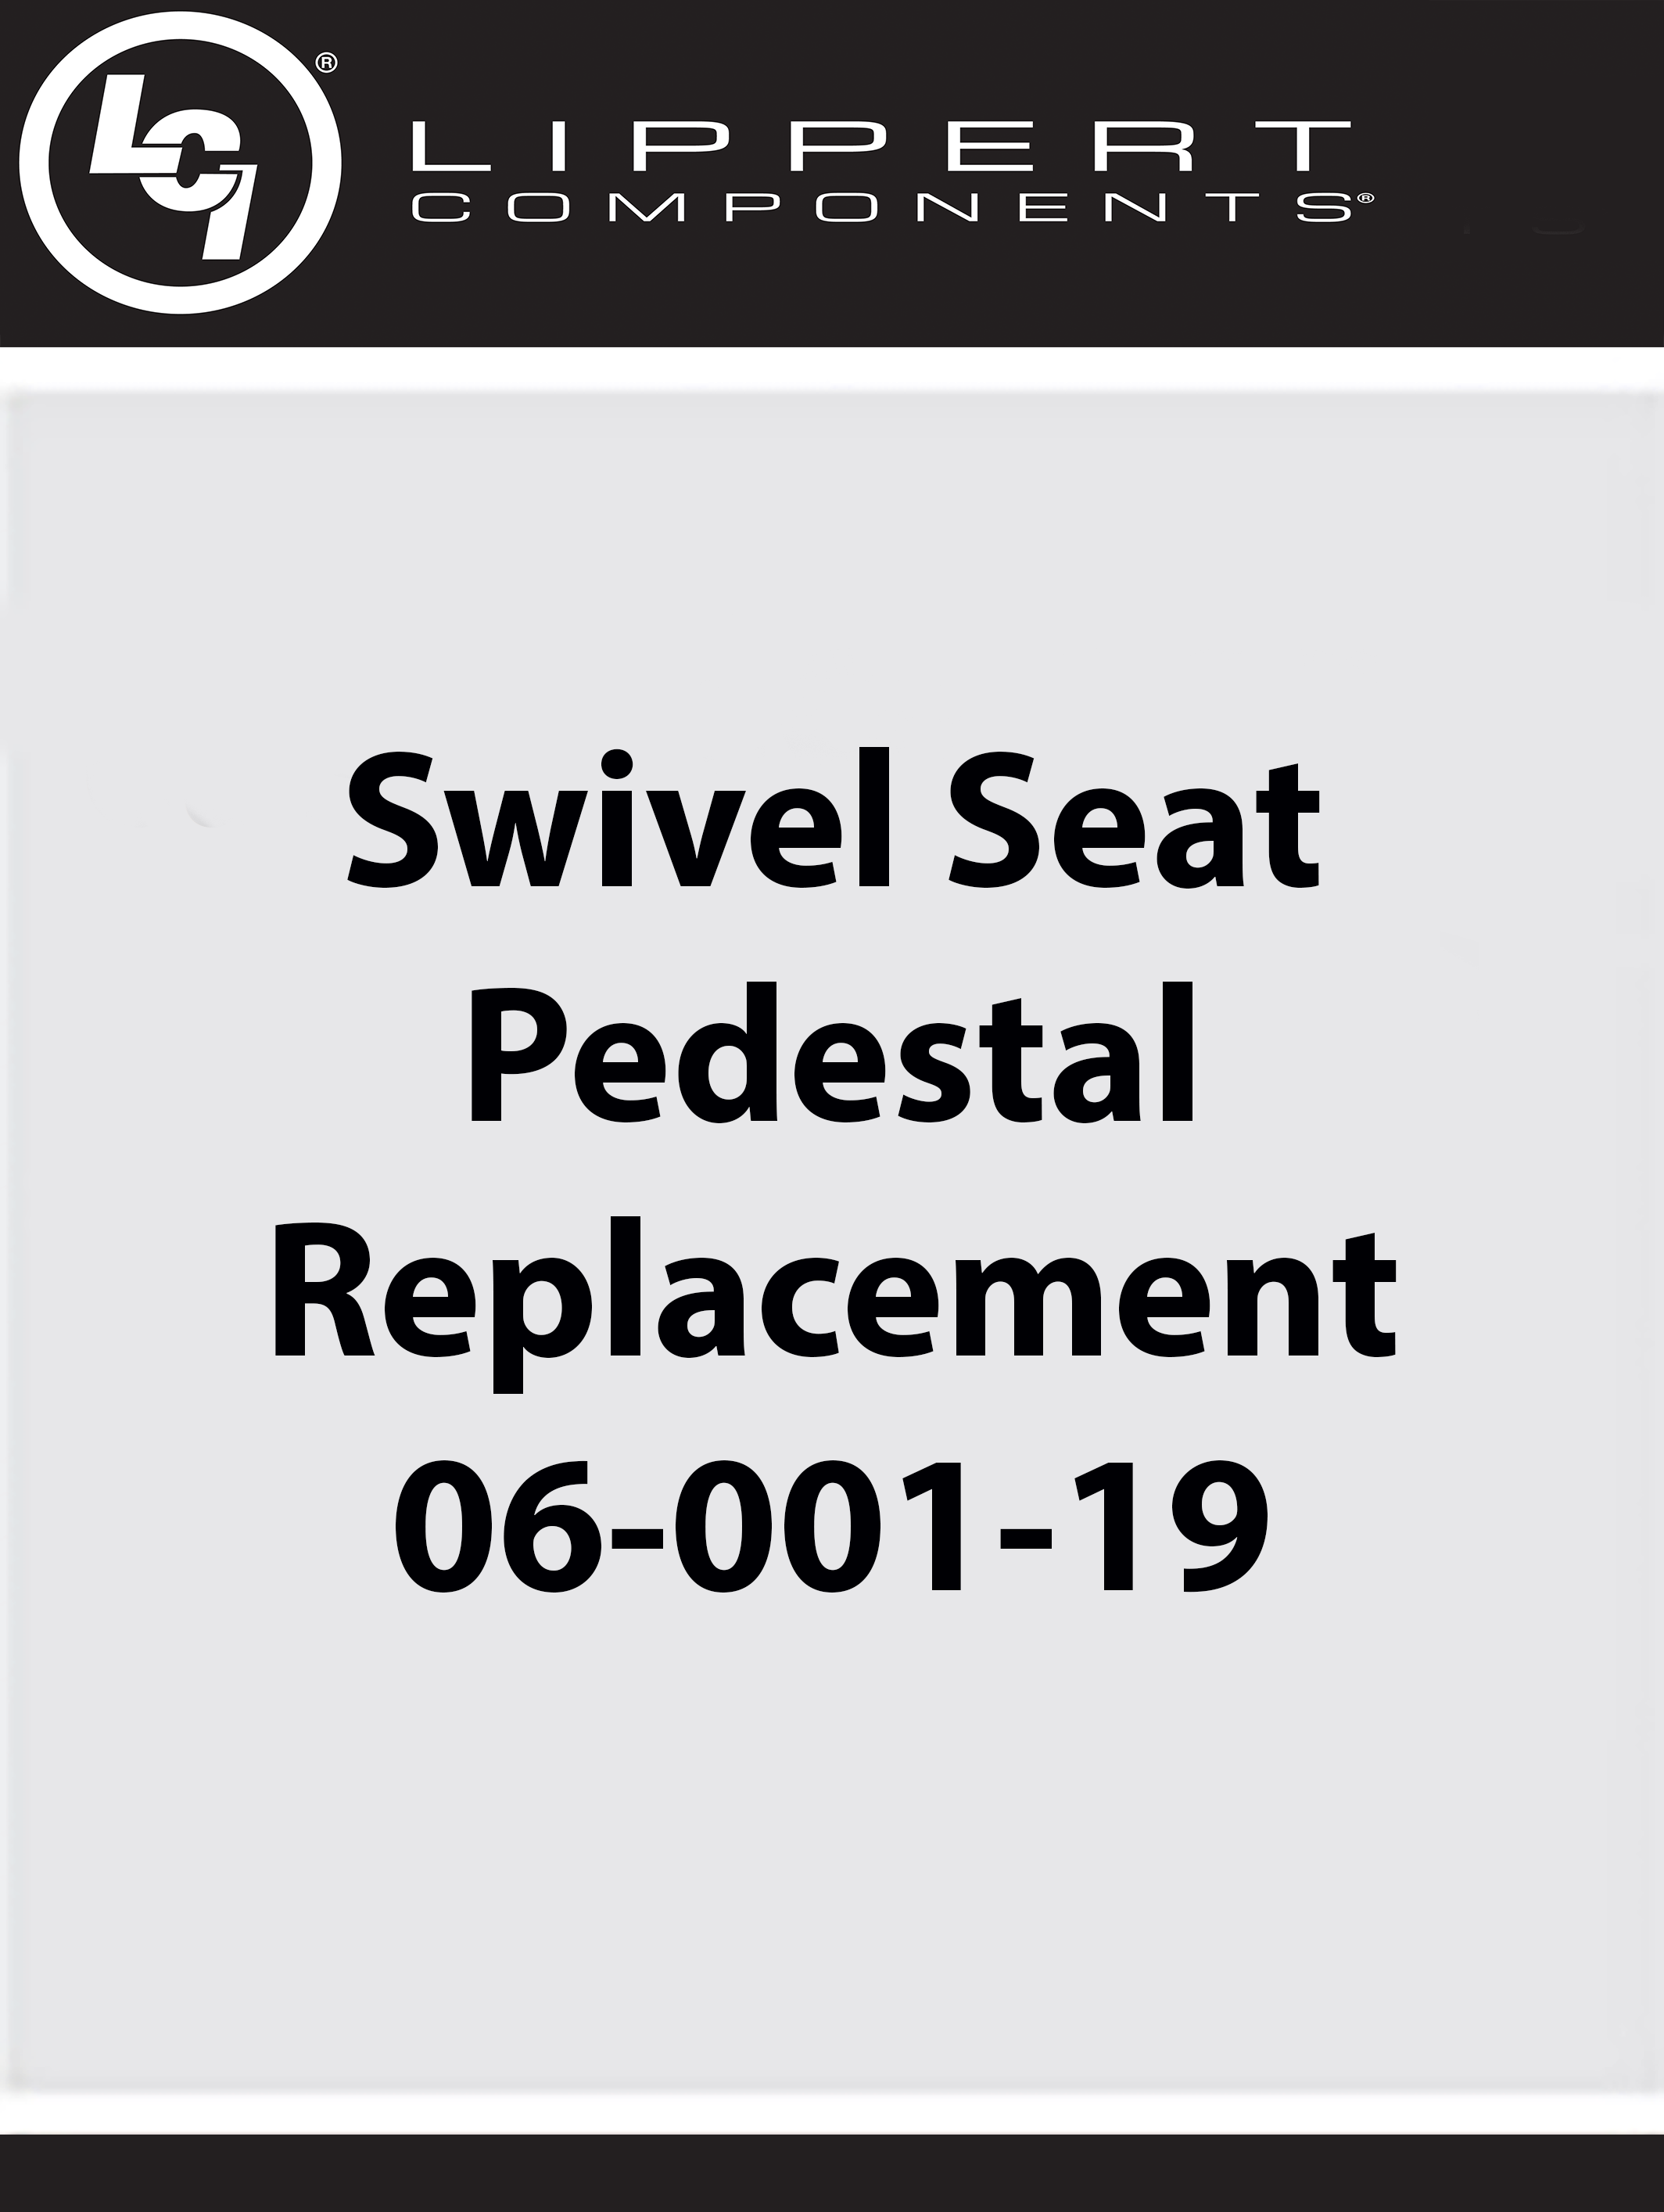 Swivel Seat Pedestal Replacement 06-001-19